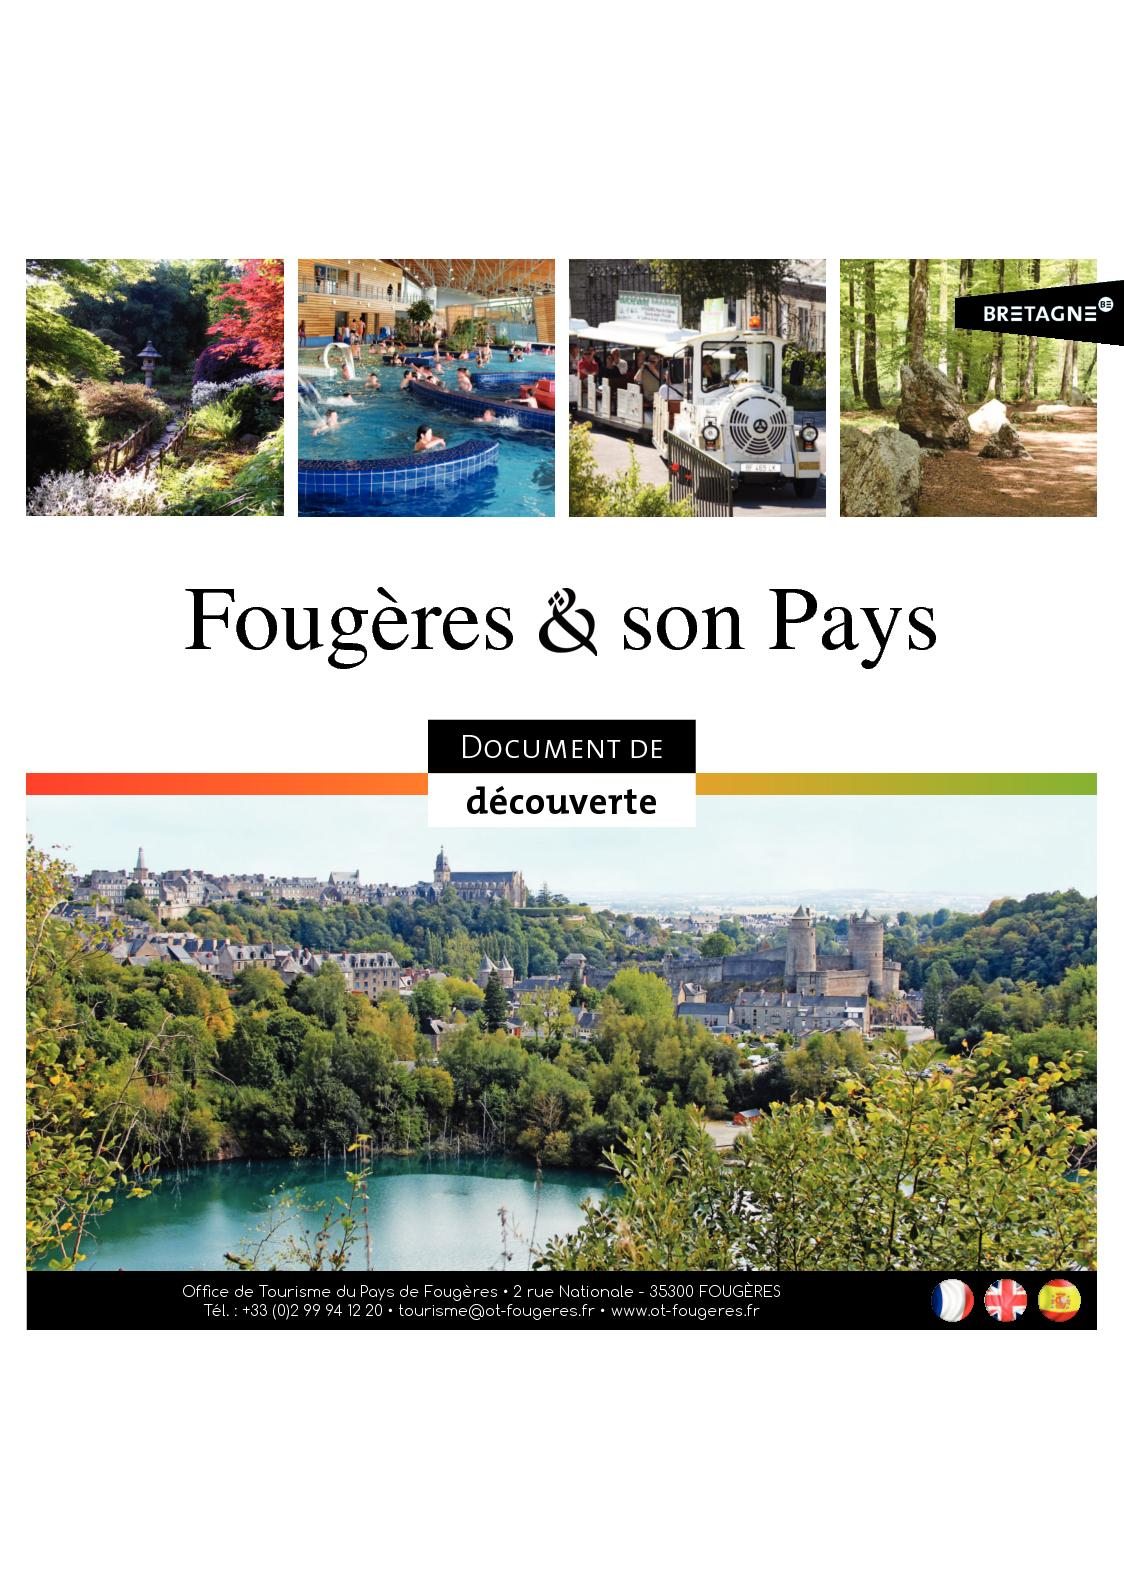 Rencontre fougeres l'association